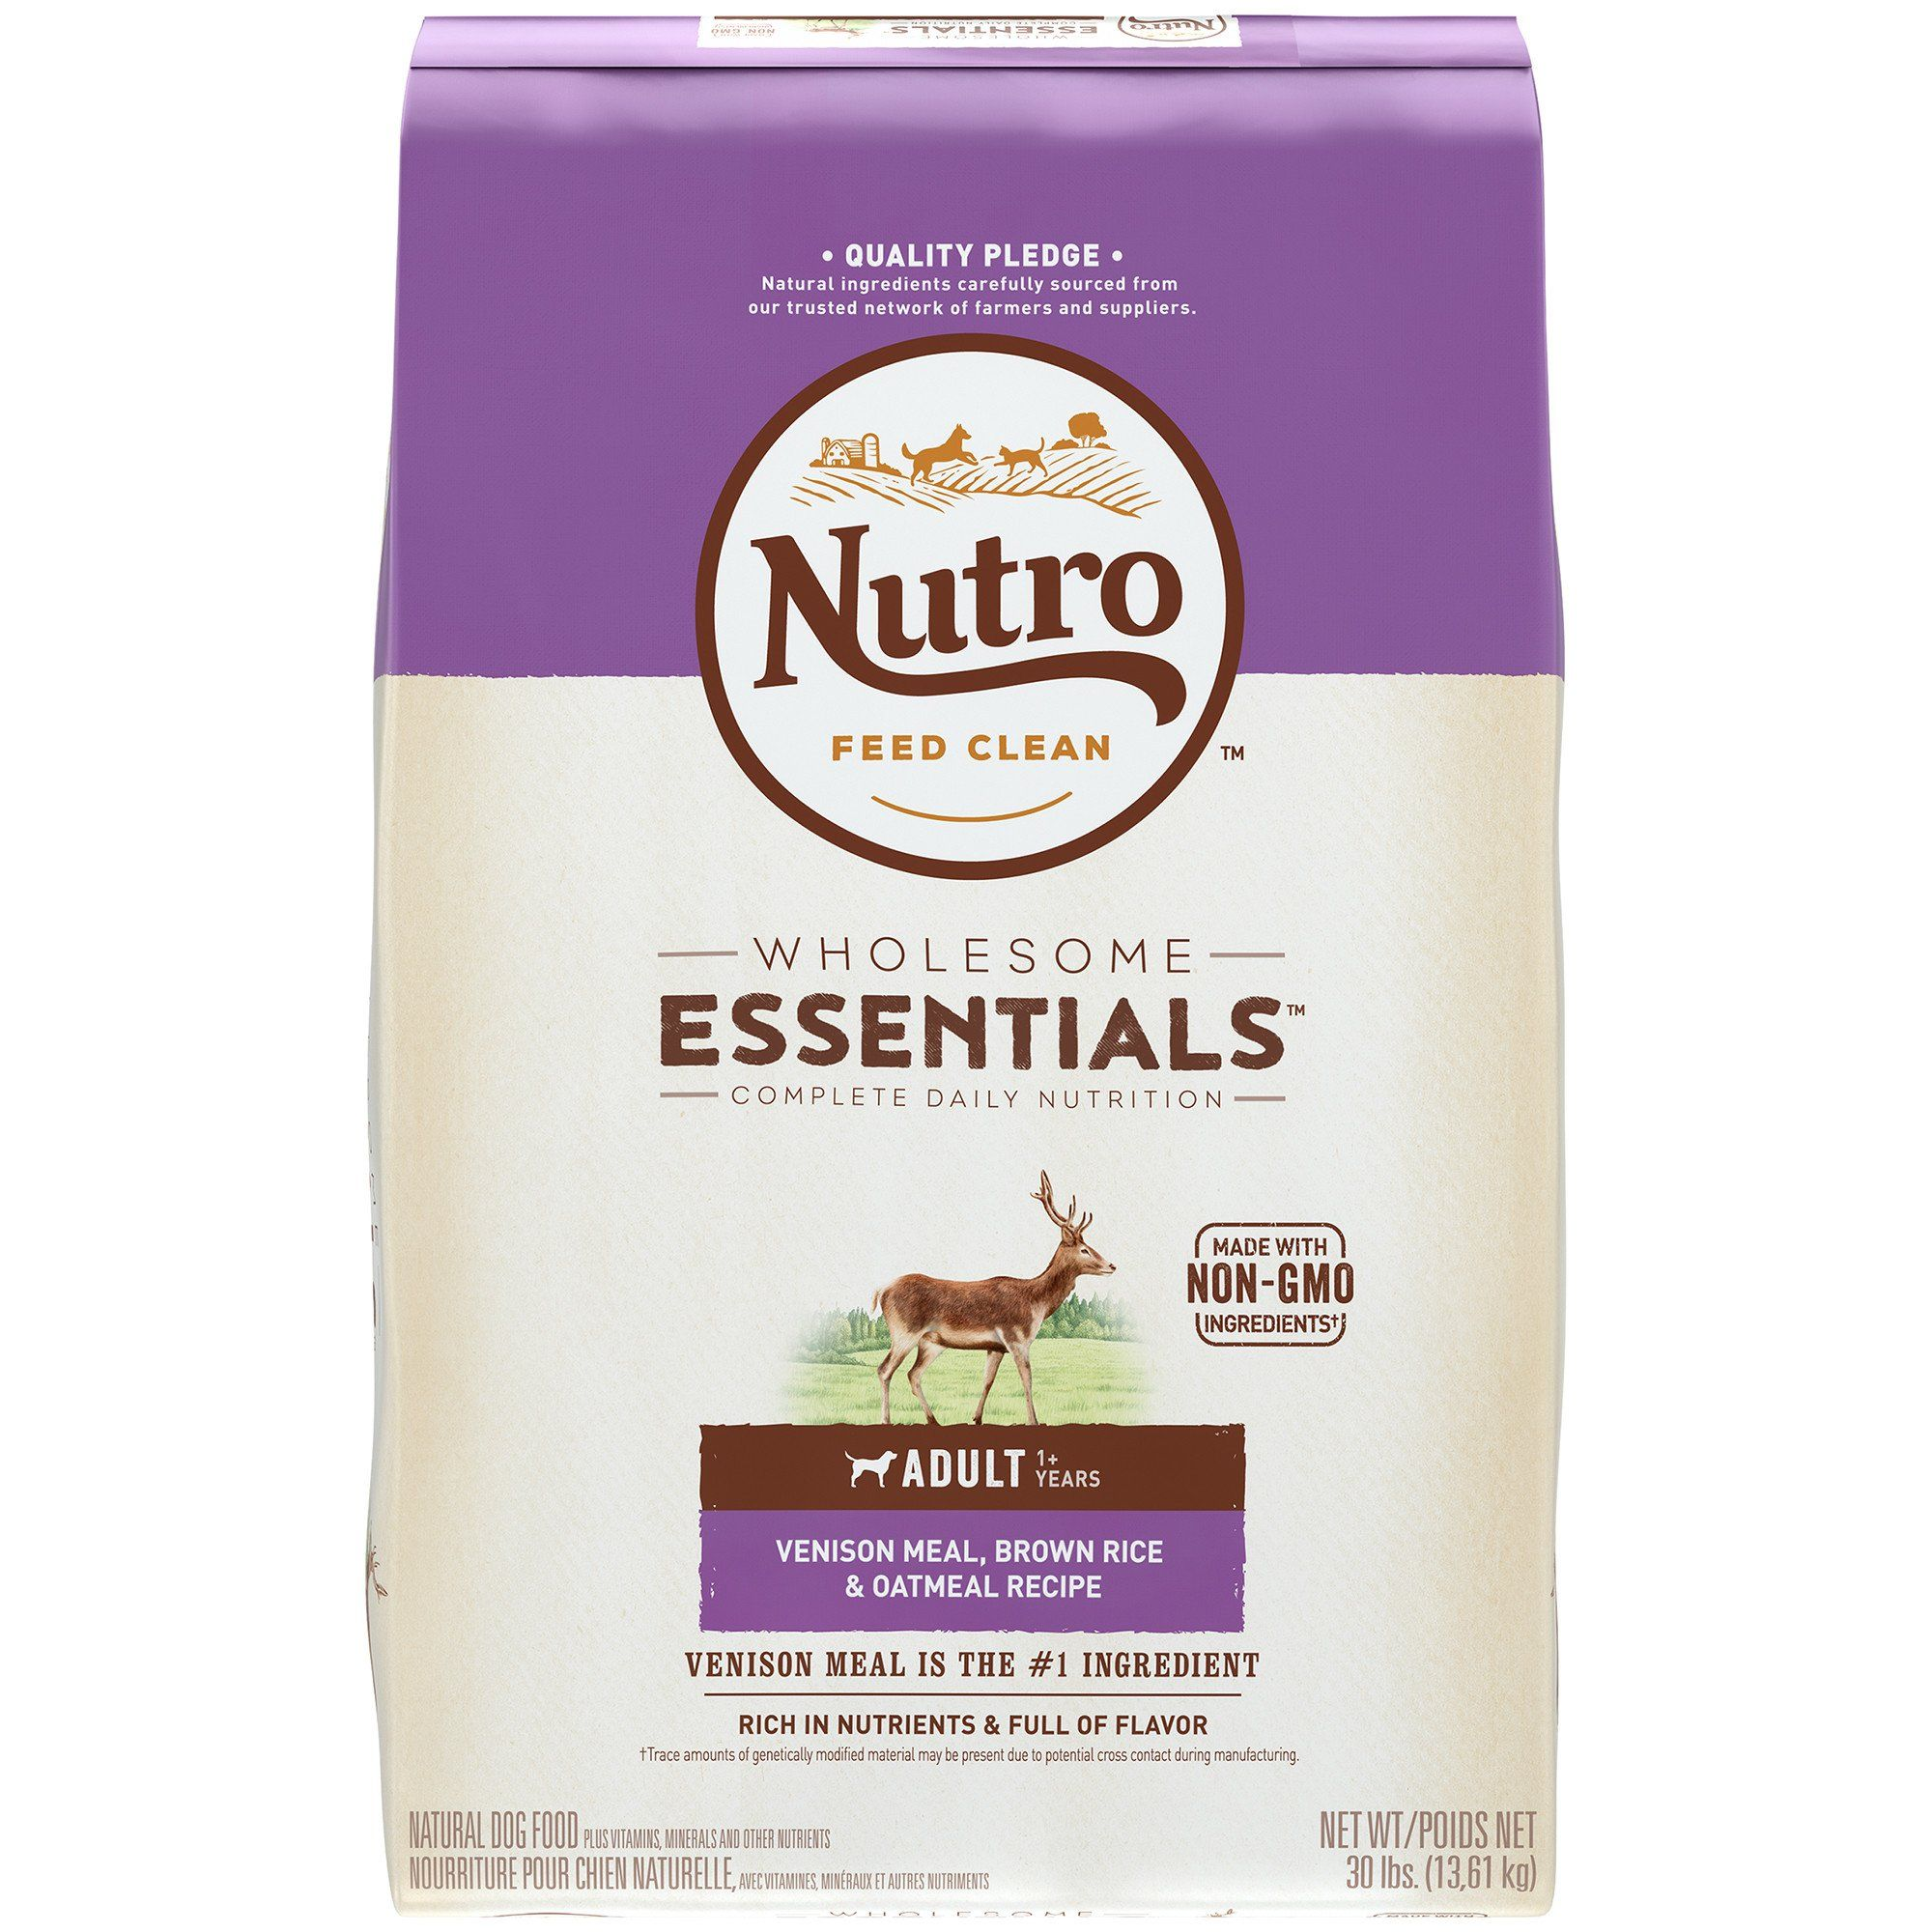 Nutro Wholesome Essentials Venison Meal Brown Rice Oatmeal